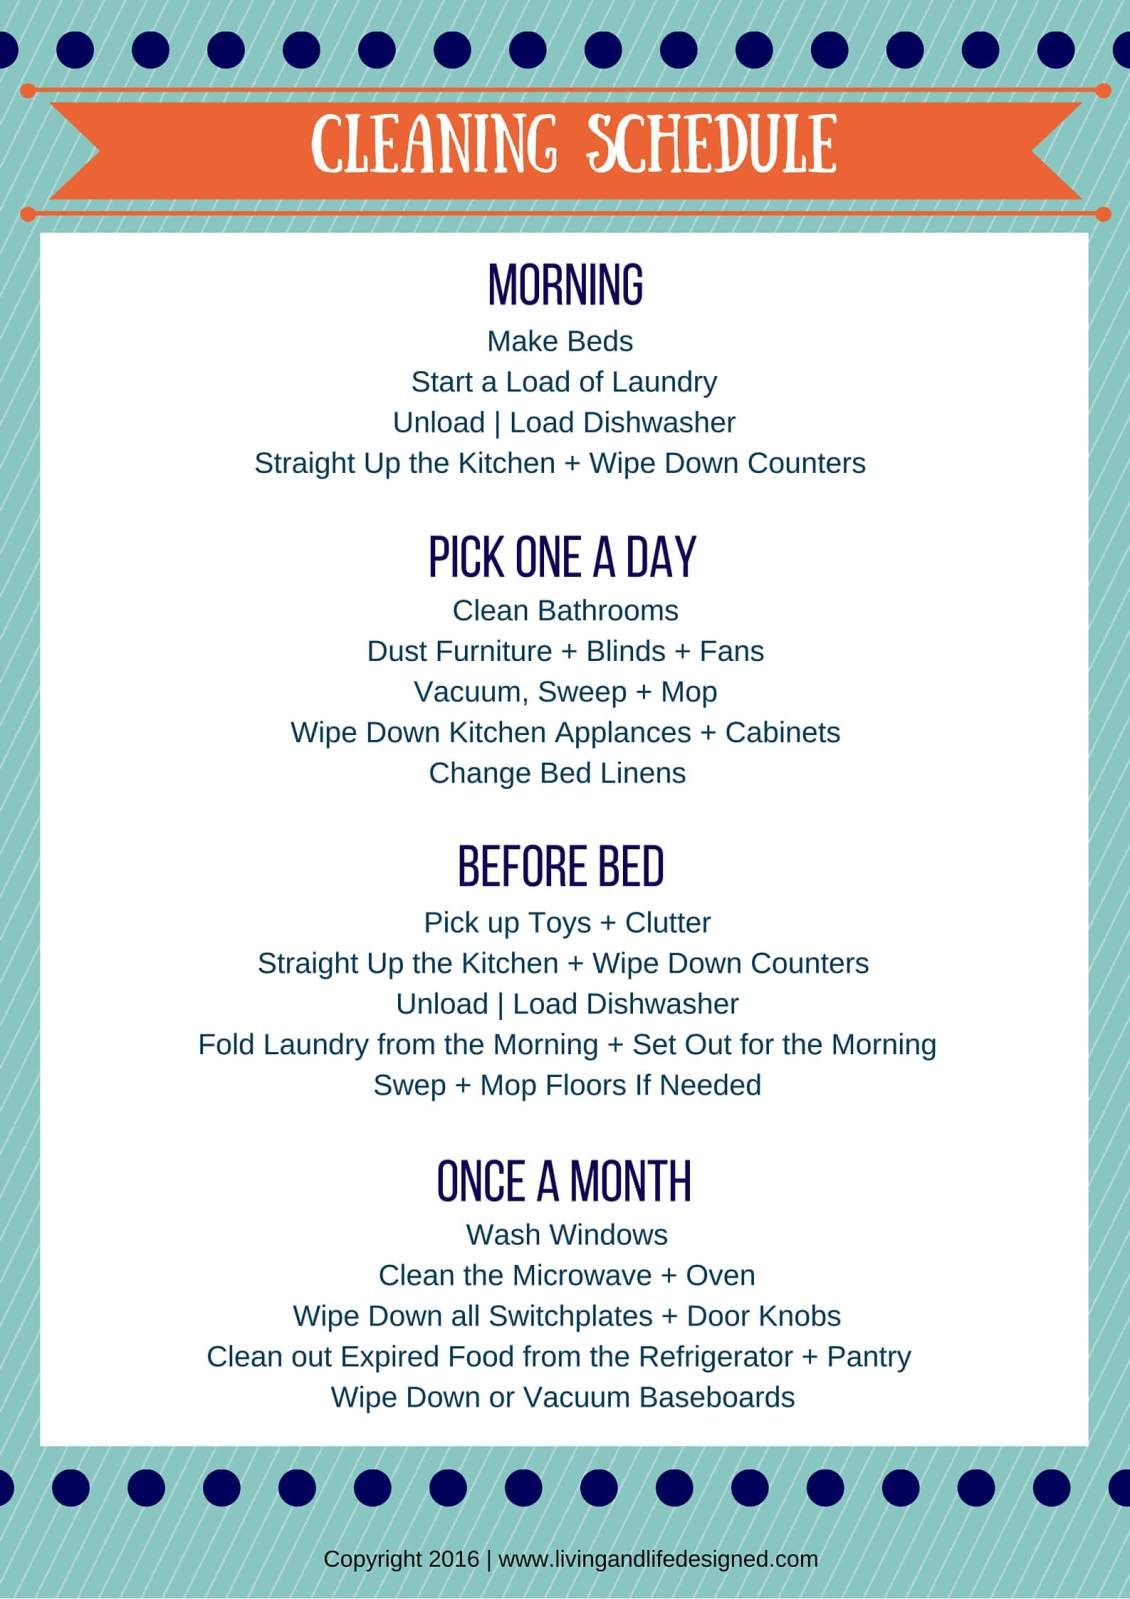 Daily 20 Minute Cleaning Schedule To Save A Ton Of Time